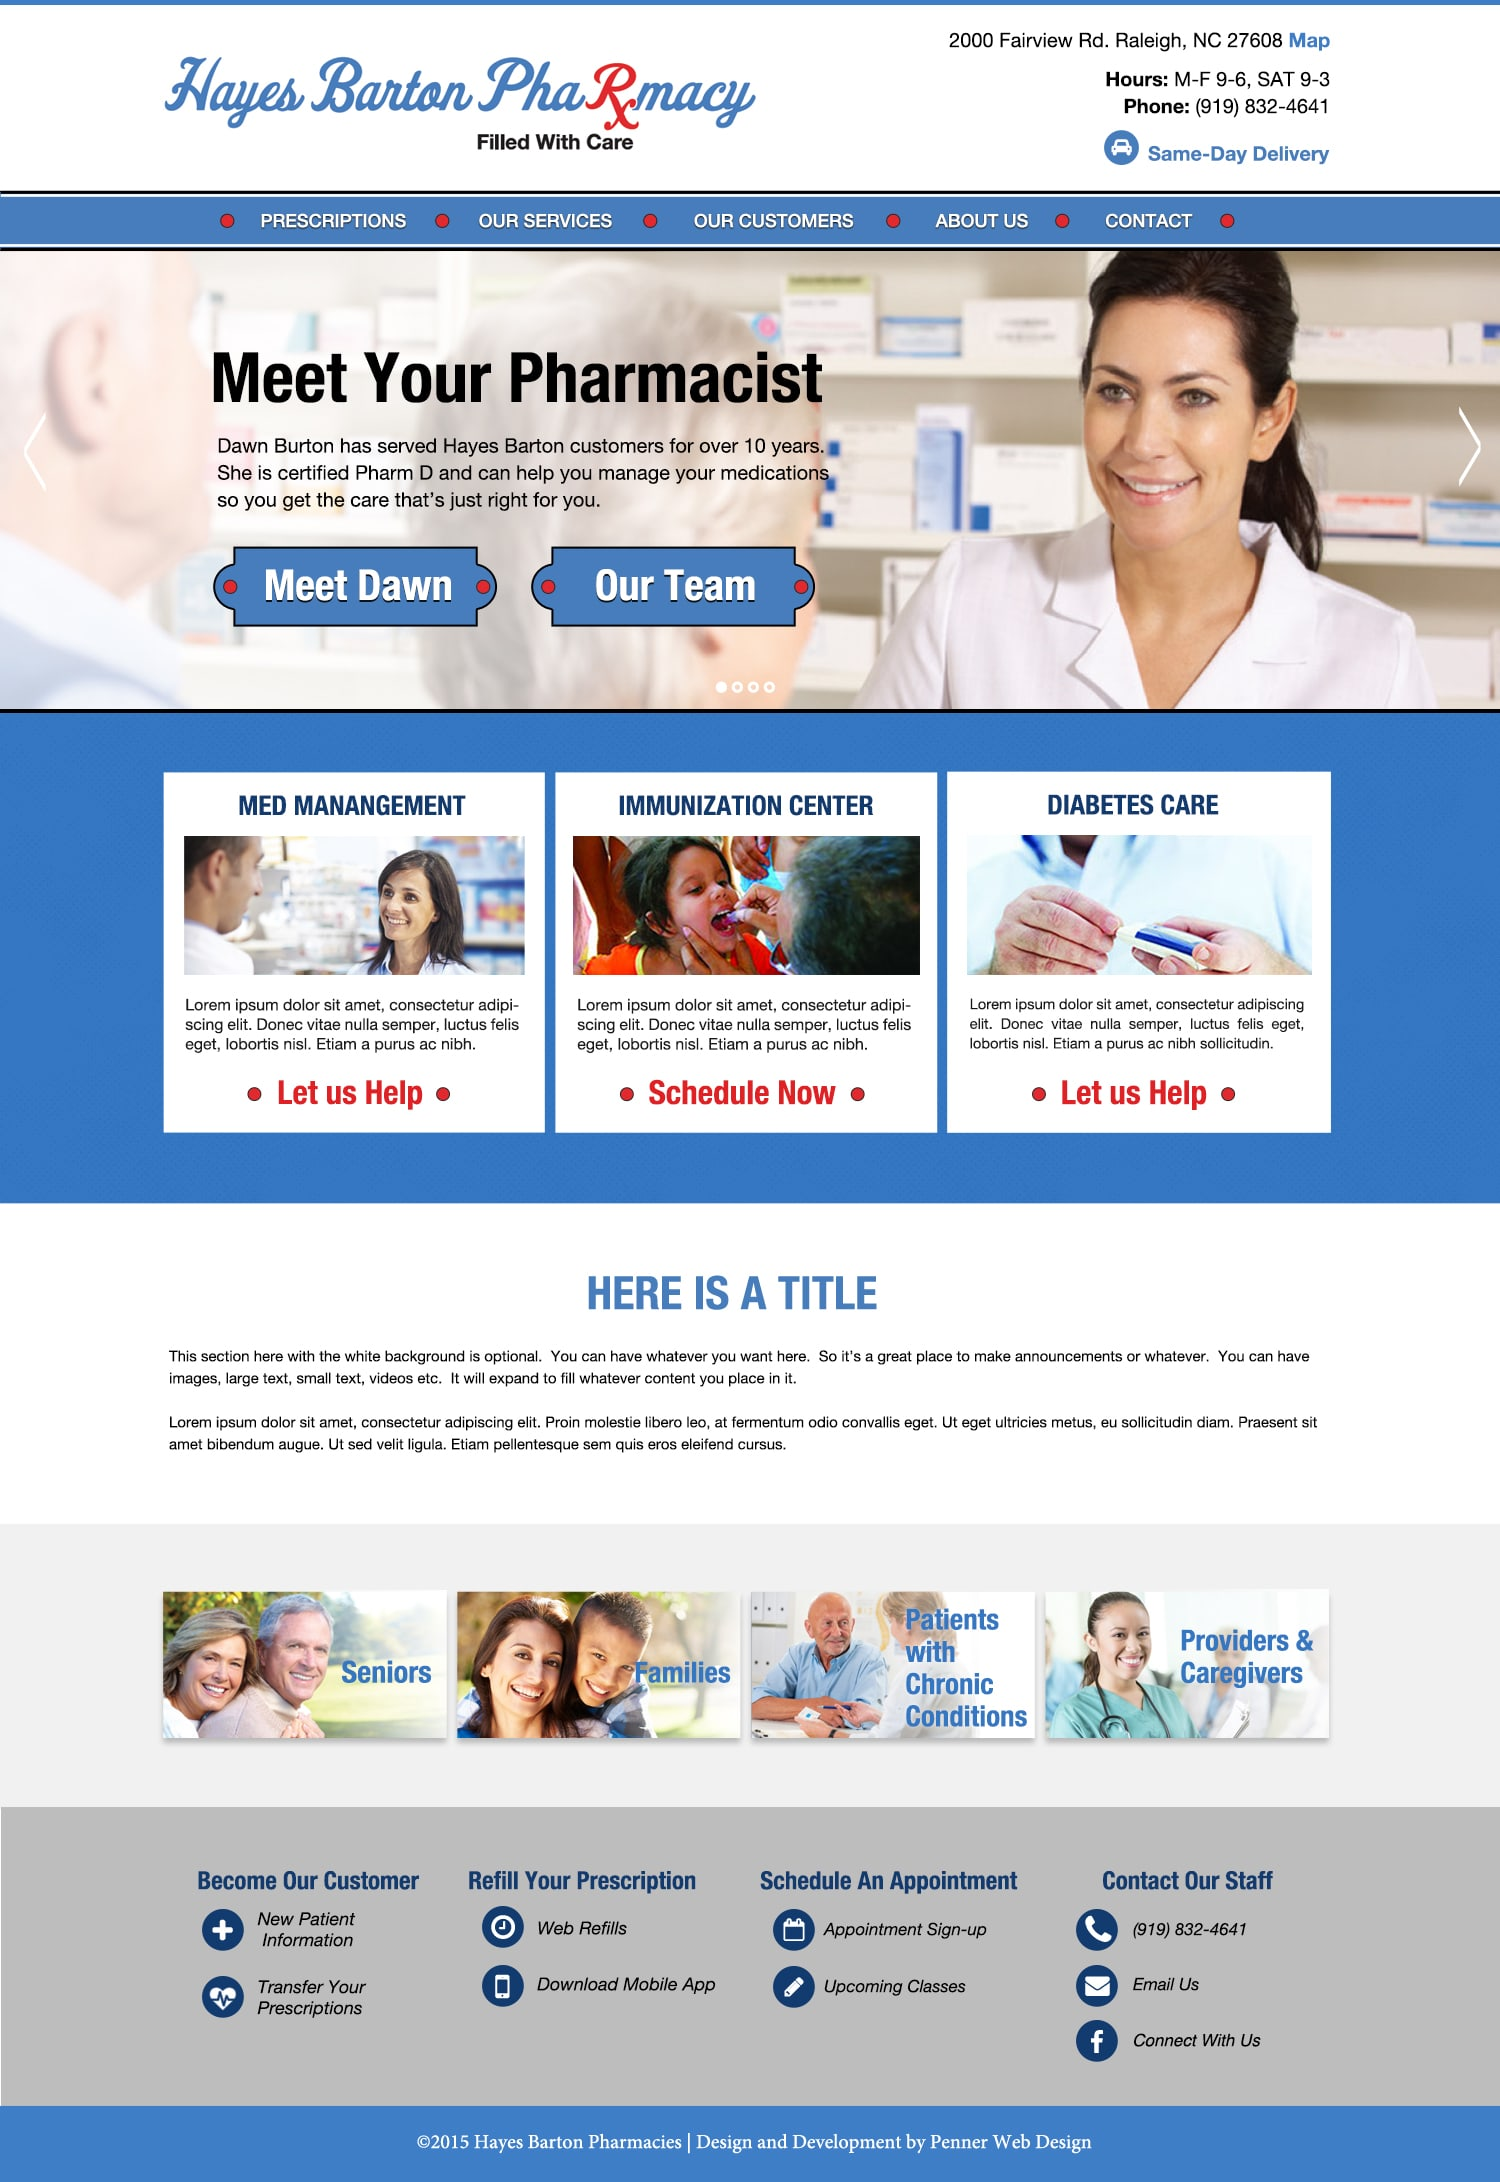 hardy-white-pharmacy-website-design